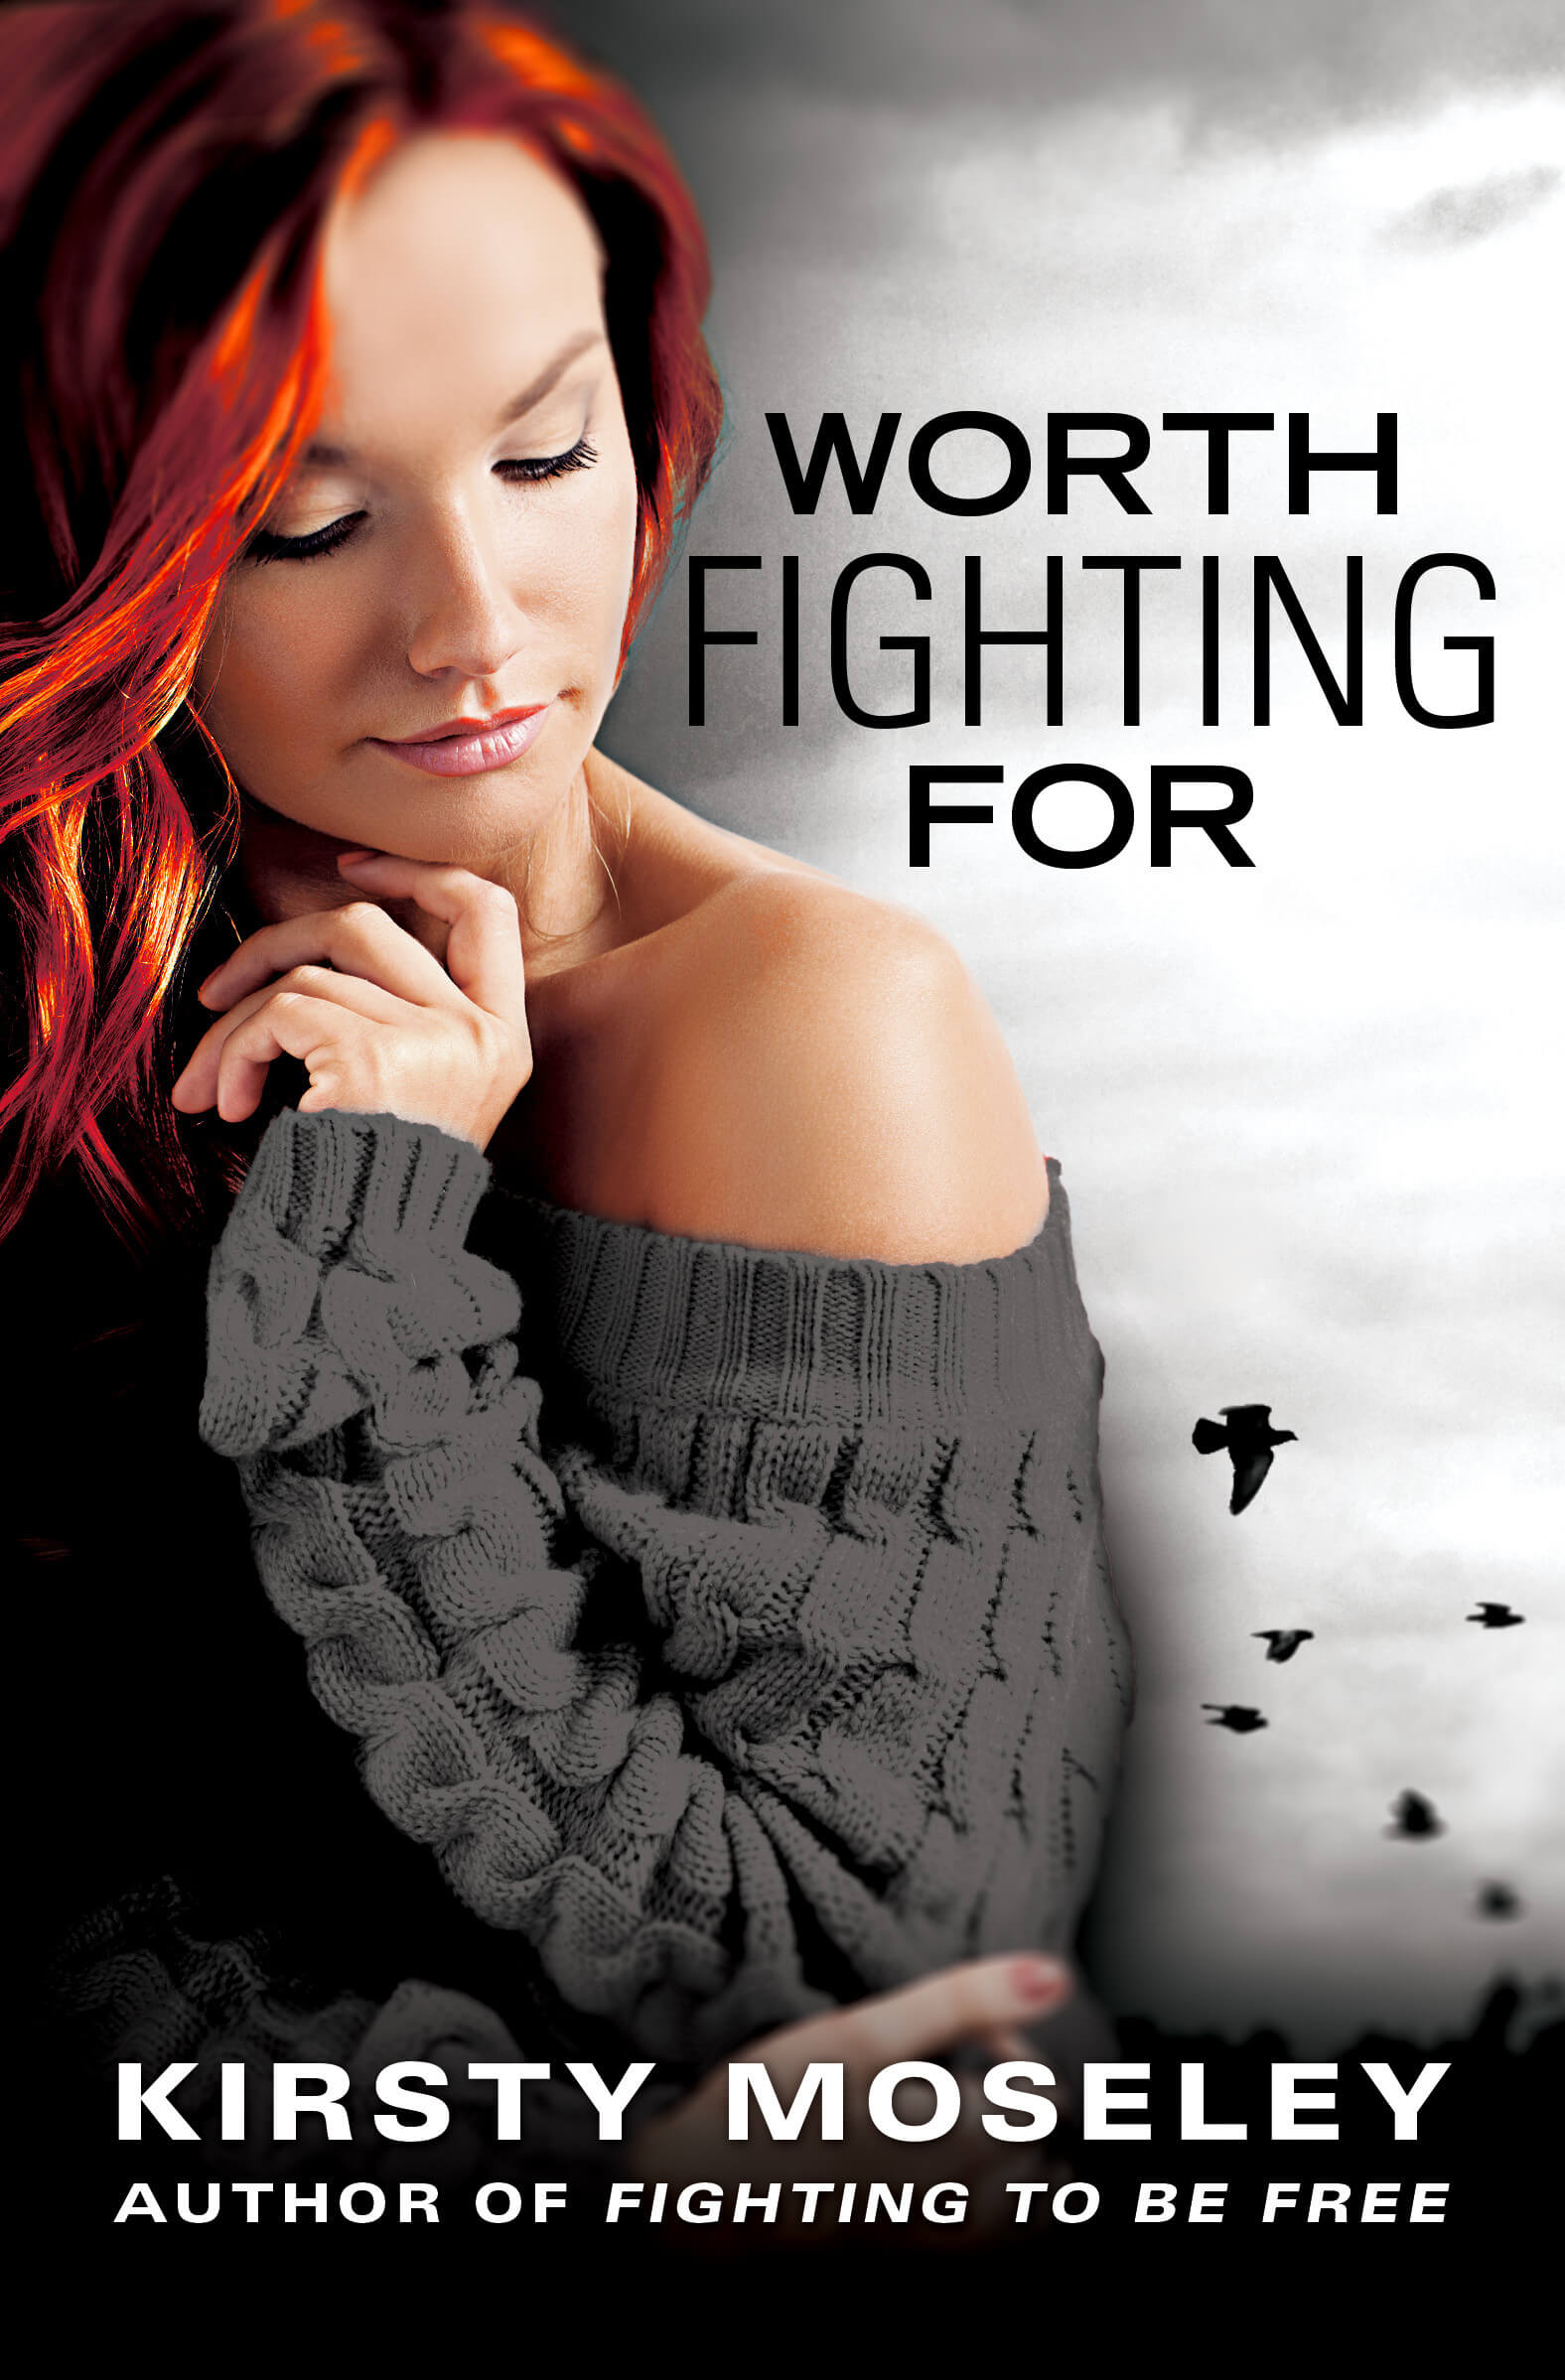 Worth Fighting For by Kirsty Moseley: Review